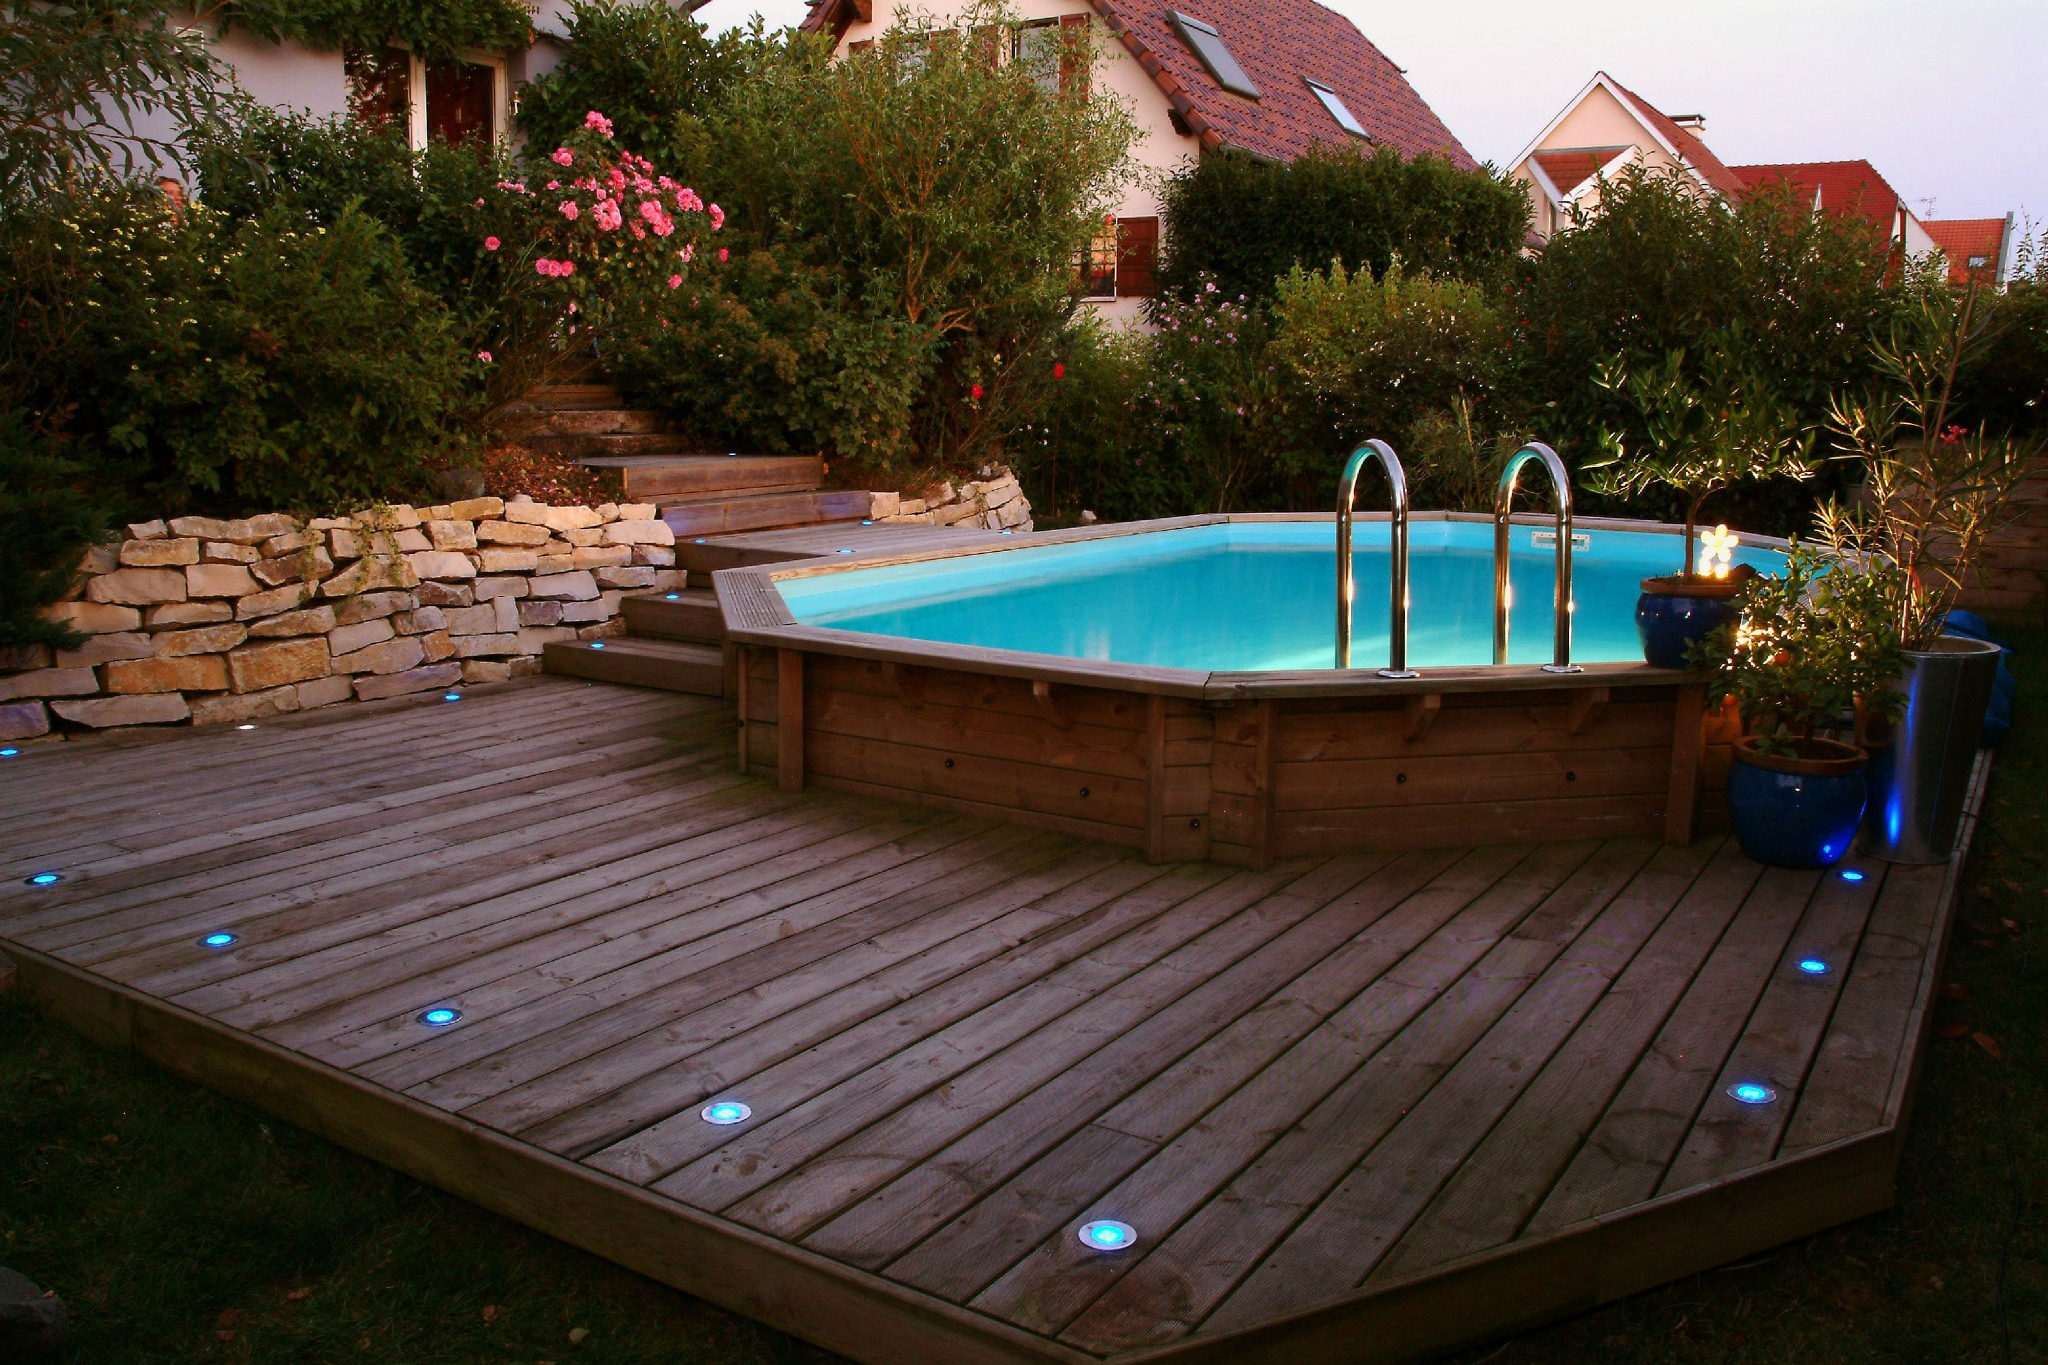 Piscine rectangulaire hors sol - Piscine rectangulaire hors sol intex ...